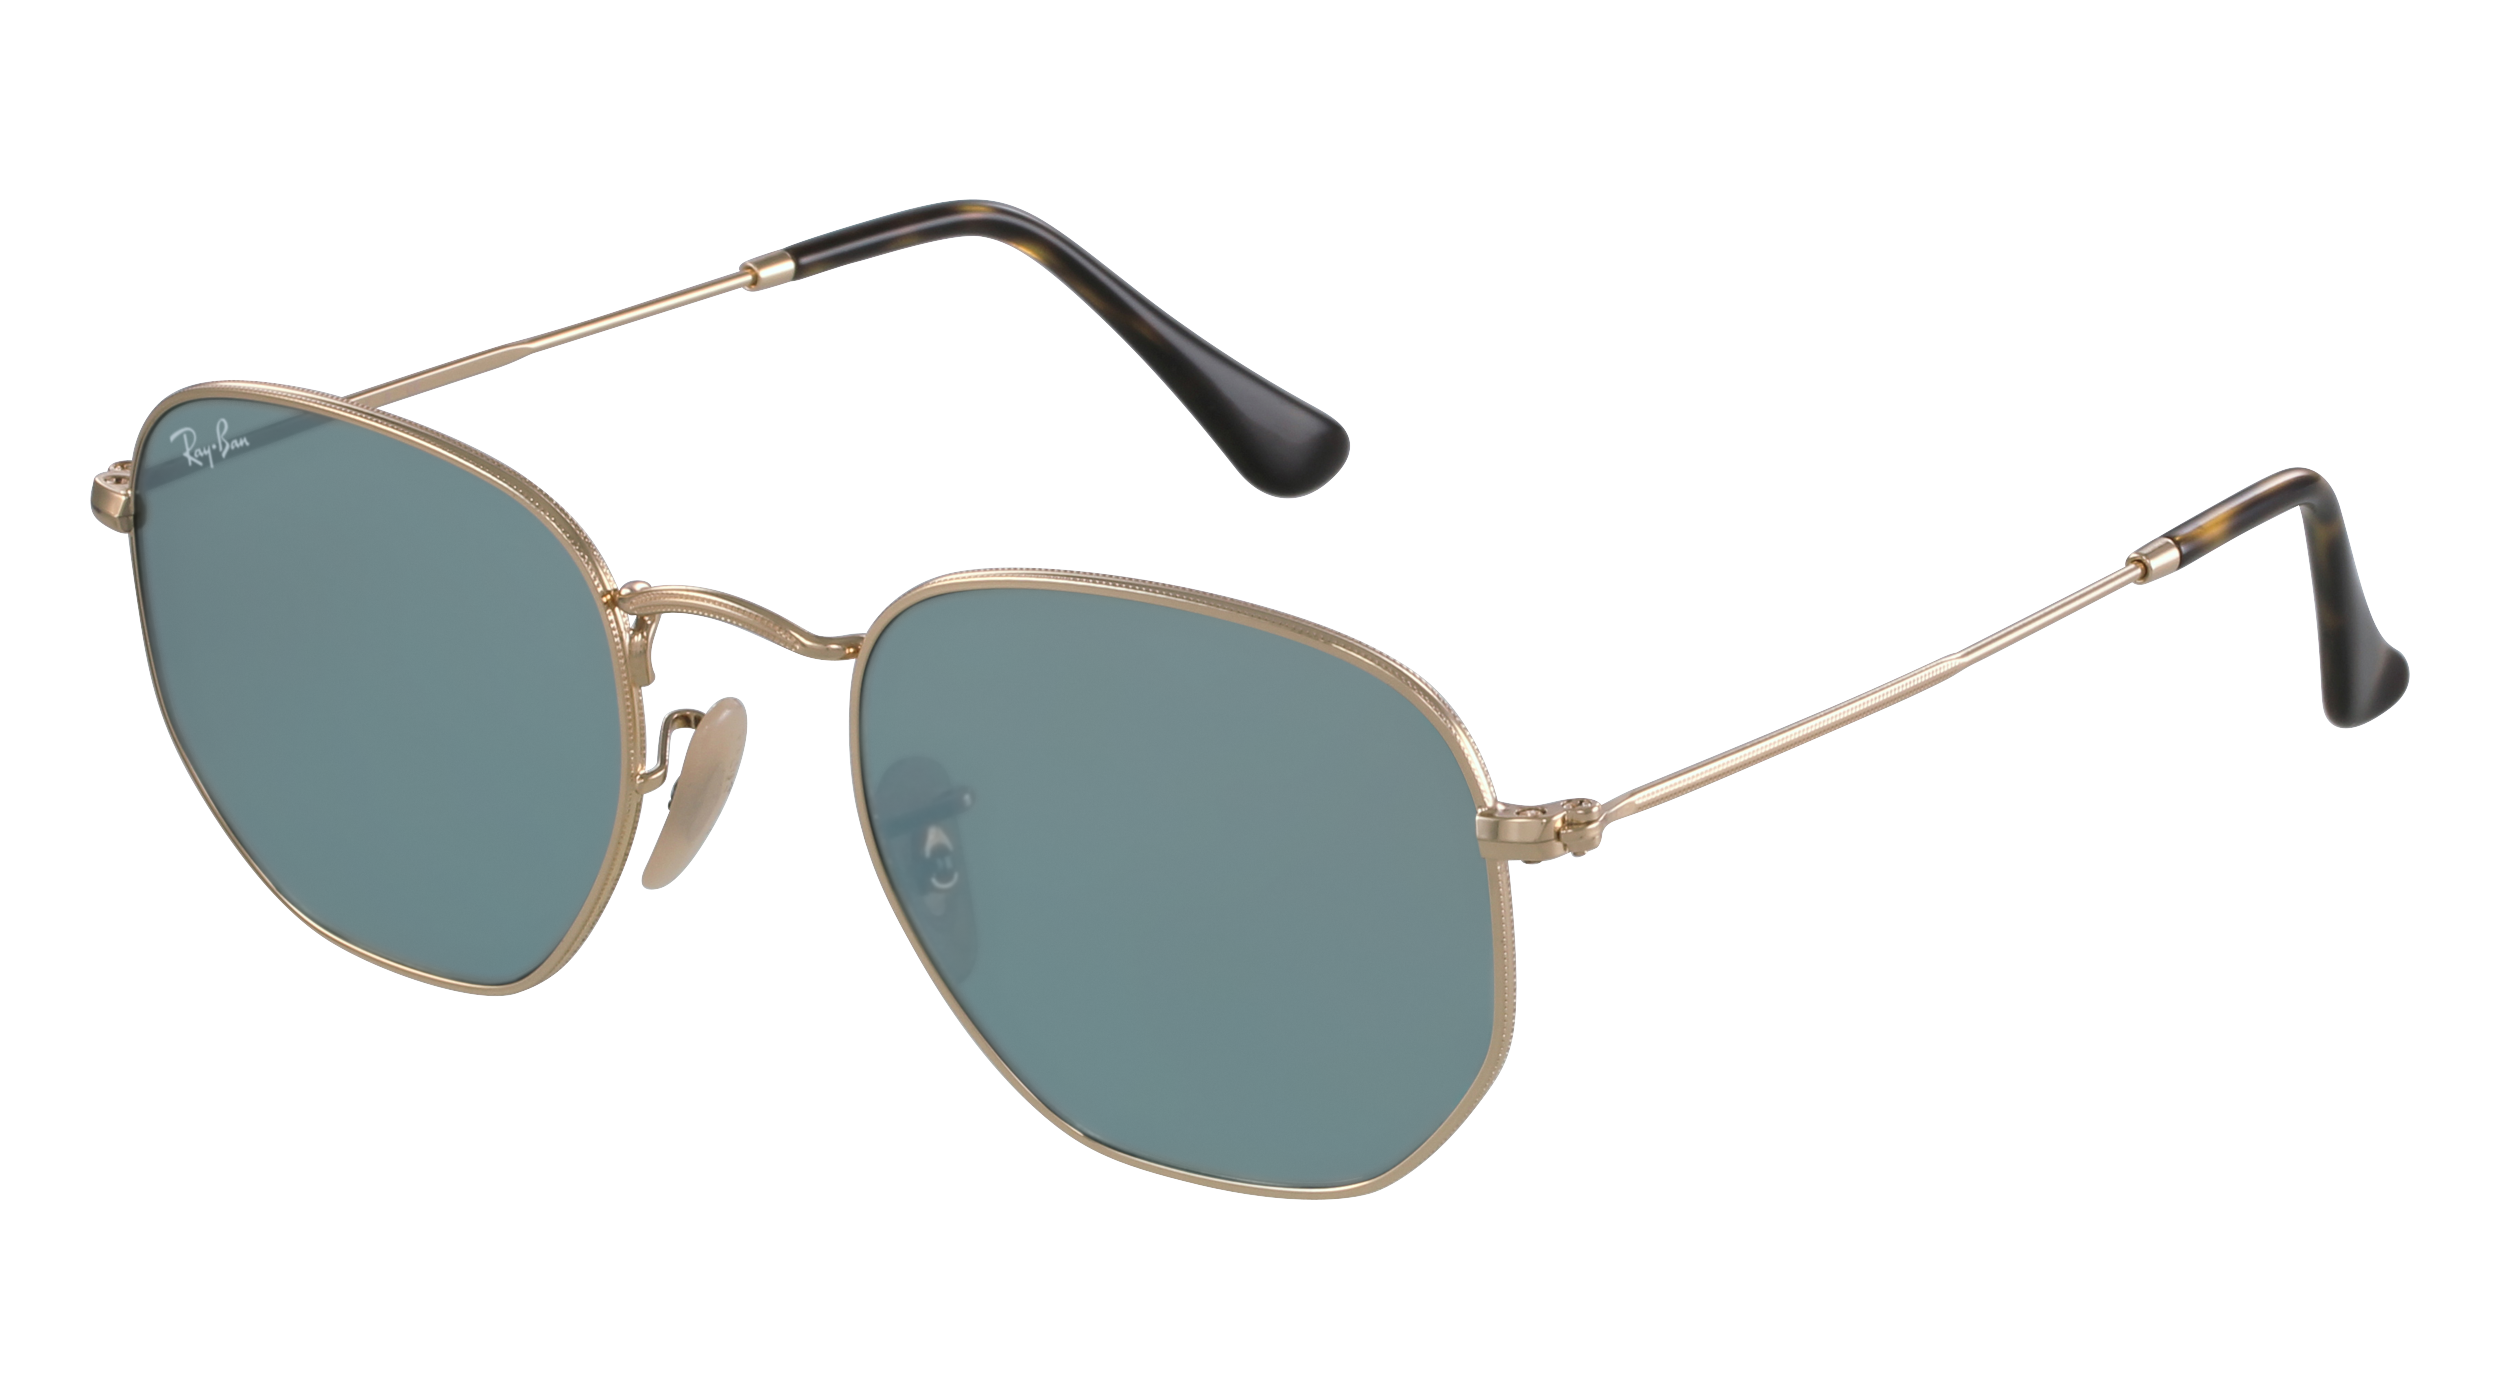 Ray-Ban RB3548N-S-00130-51-21-145